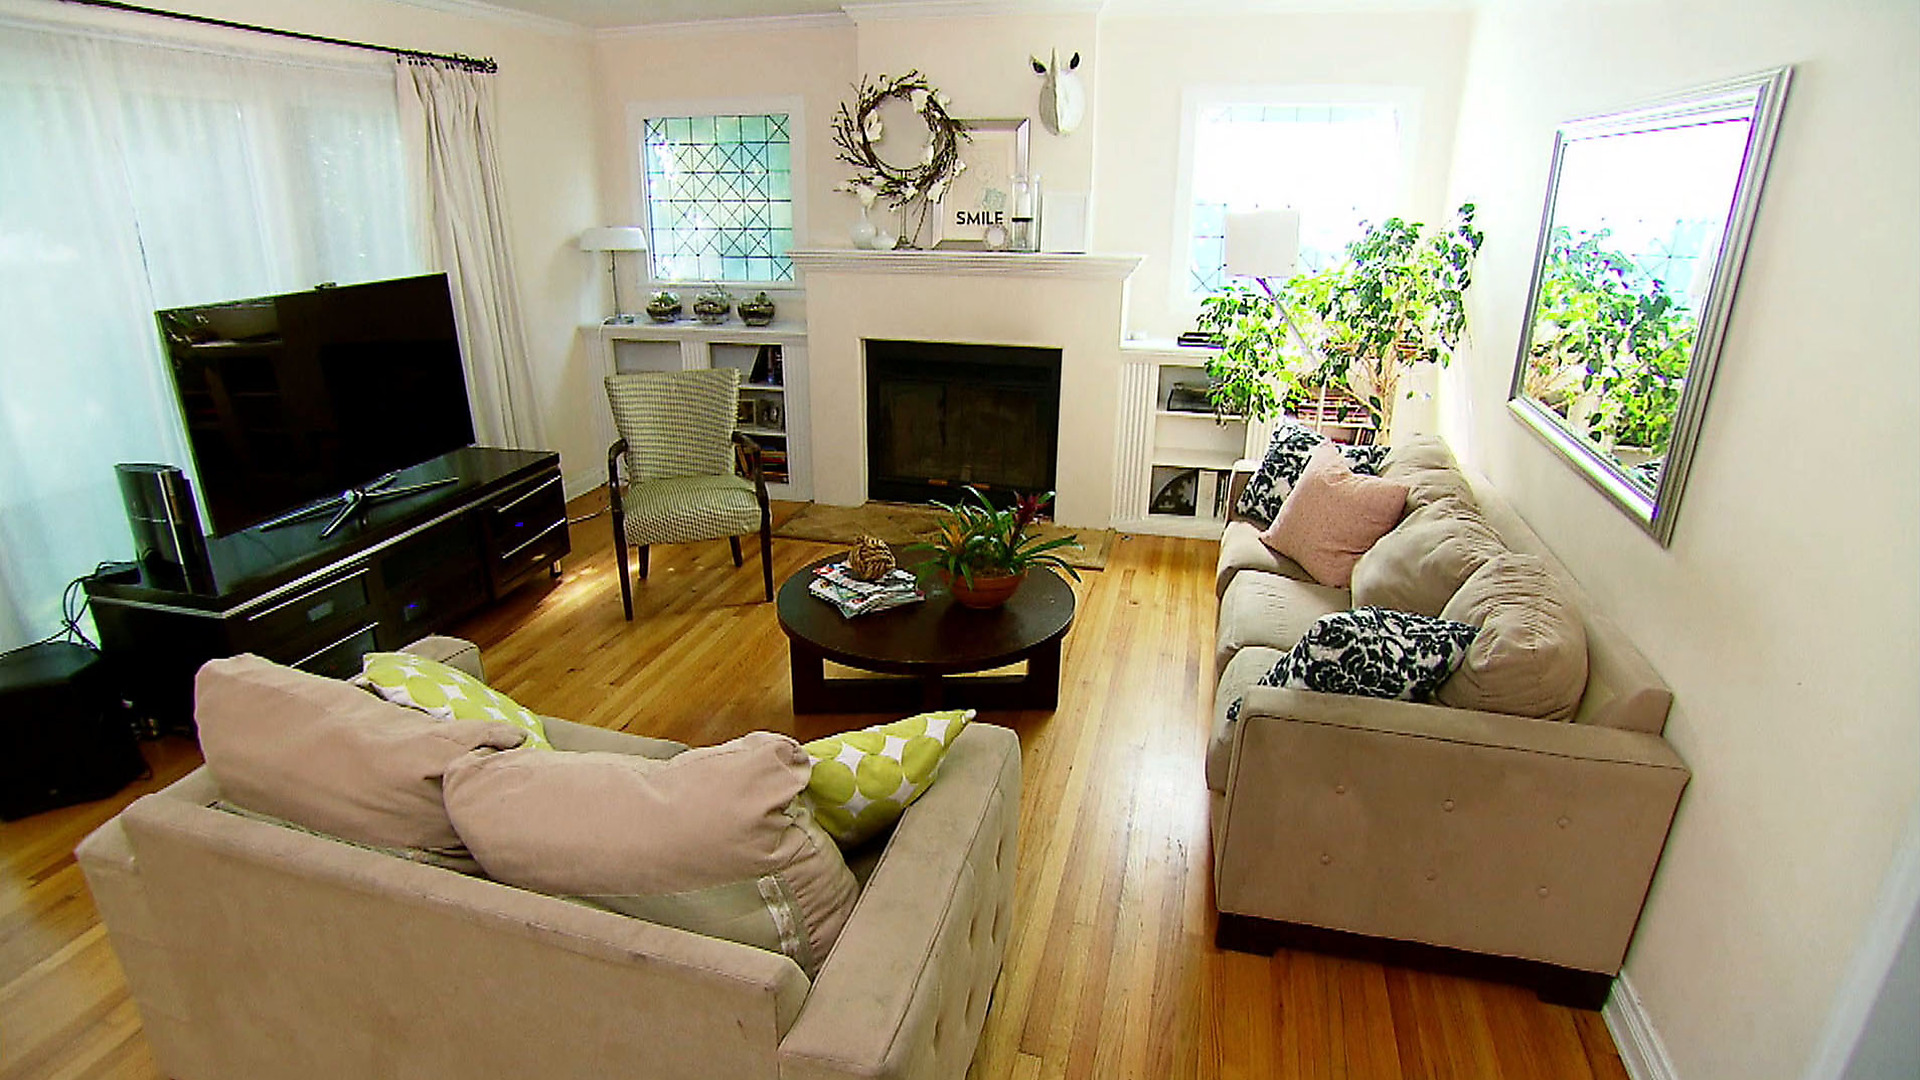 New living room remodeling ideas house floor ideas for Eclectic apartment decorating ideas